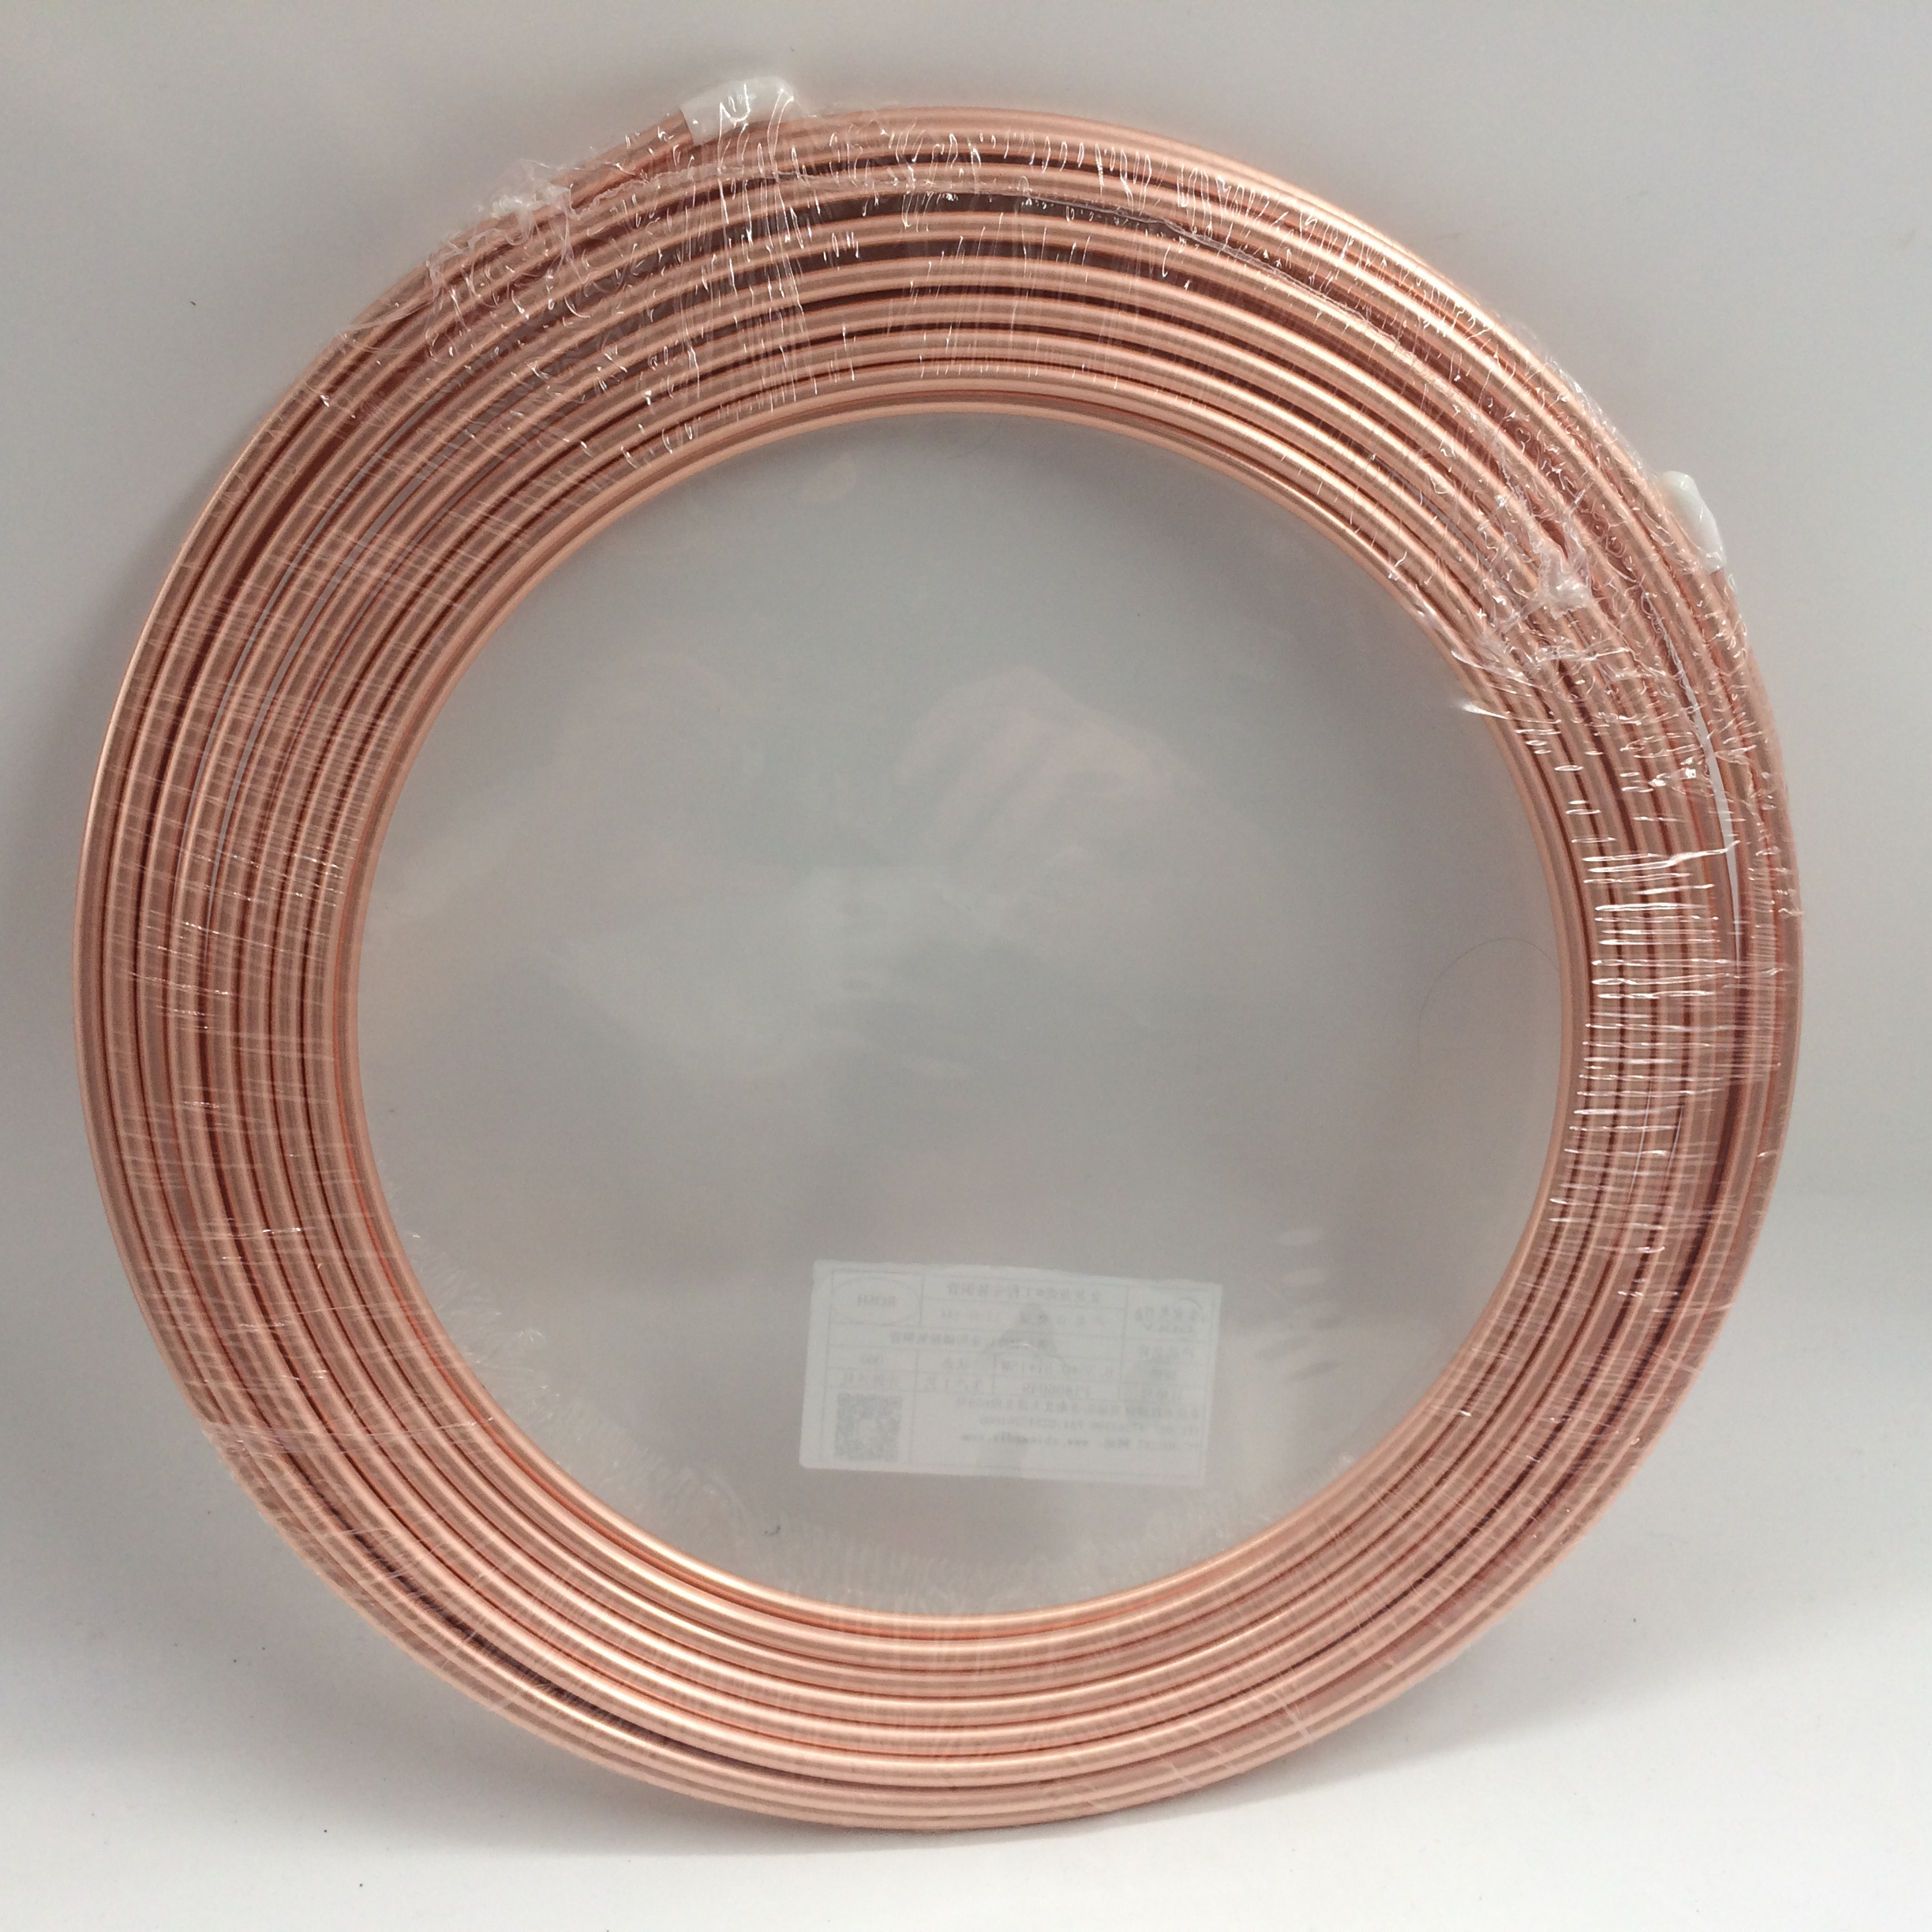 Copper Pipe Price For Ac, Copper Pipe Price For Ac Suppliers and ...